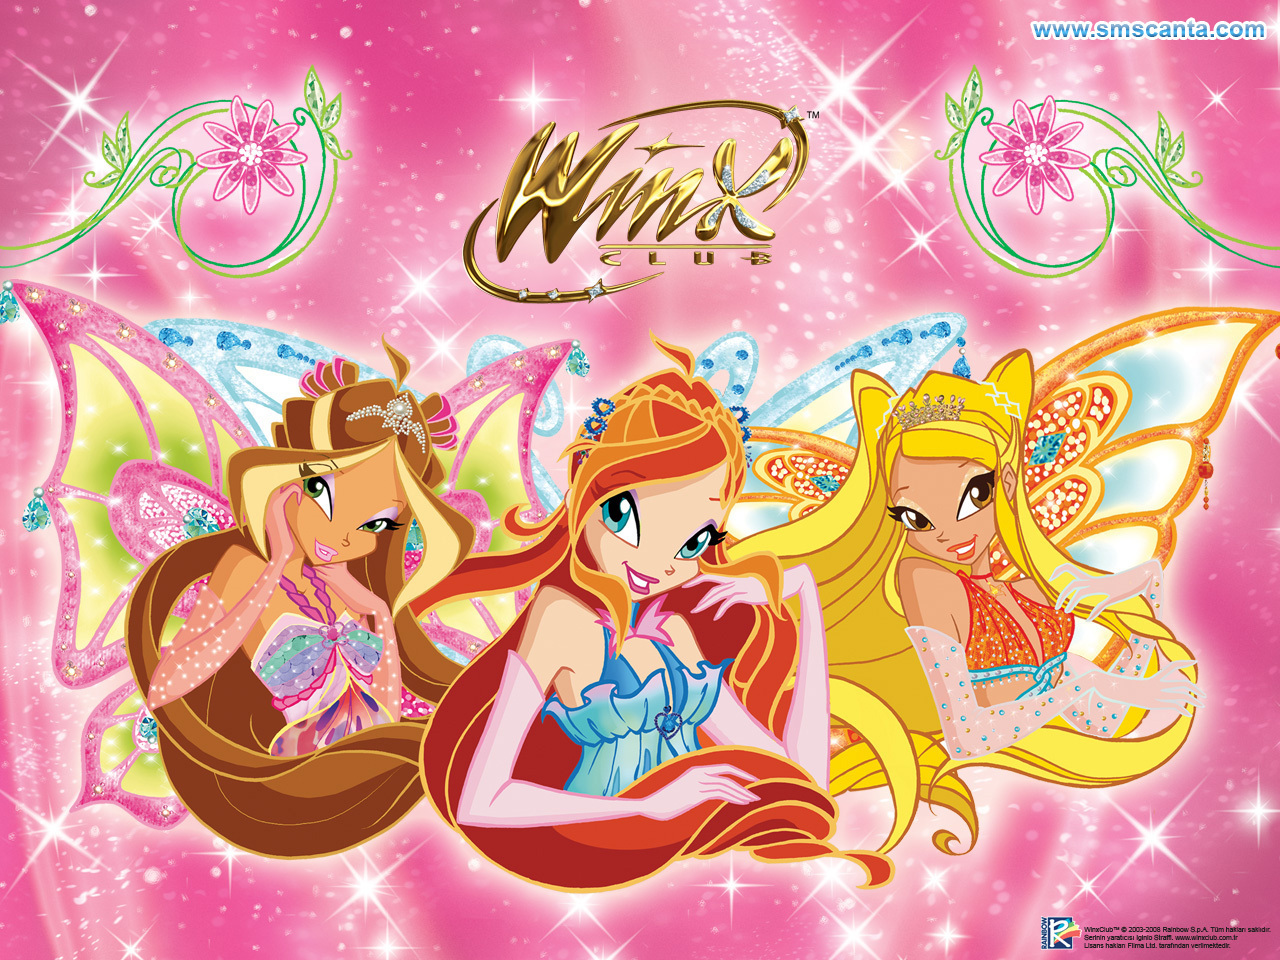 Random some pictures from my favourite cartoon winx club